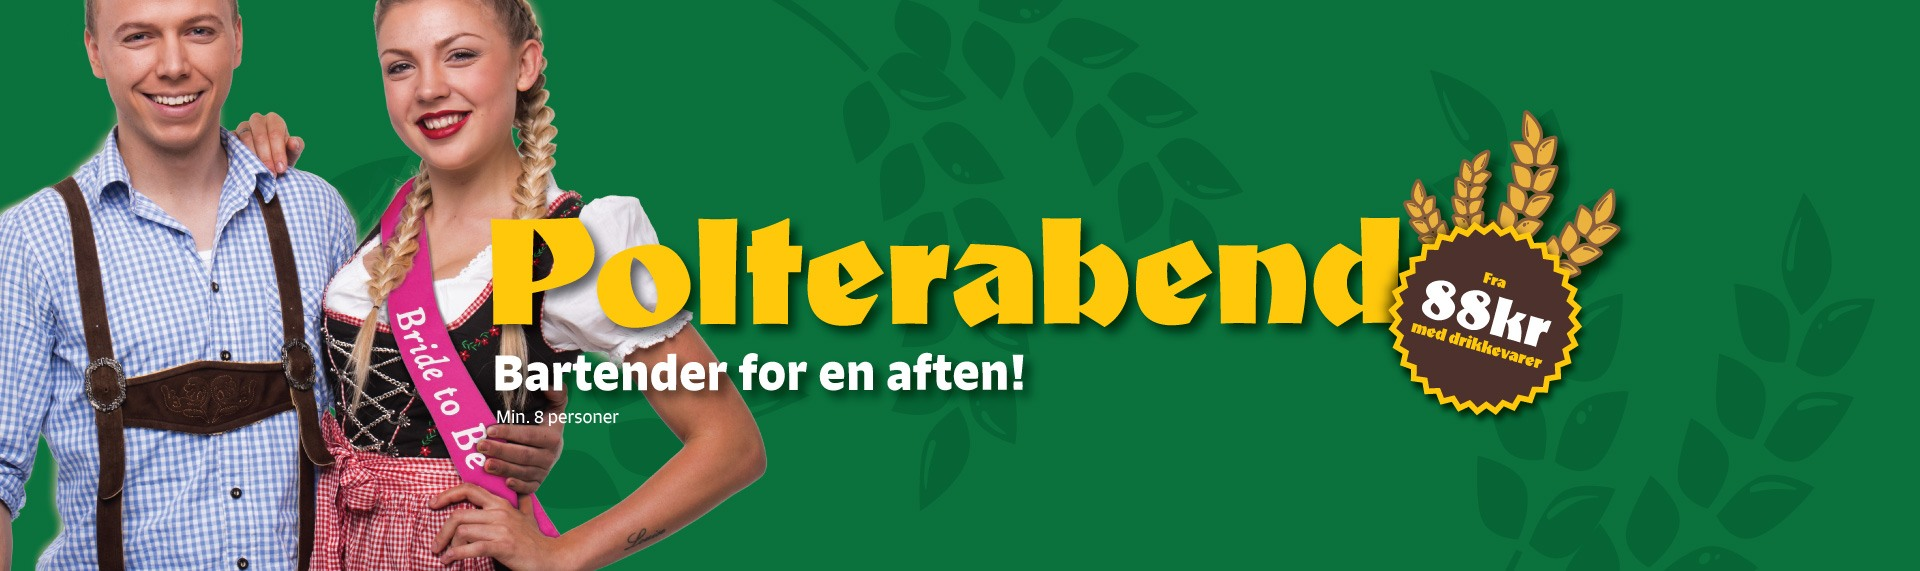 Polterabend-kampagne-mailbanner-HHB-alle_88